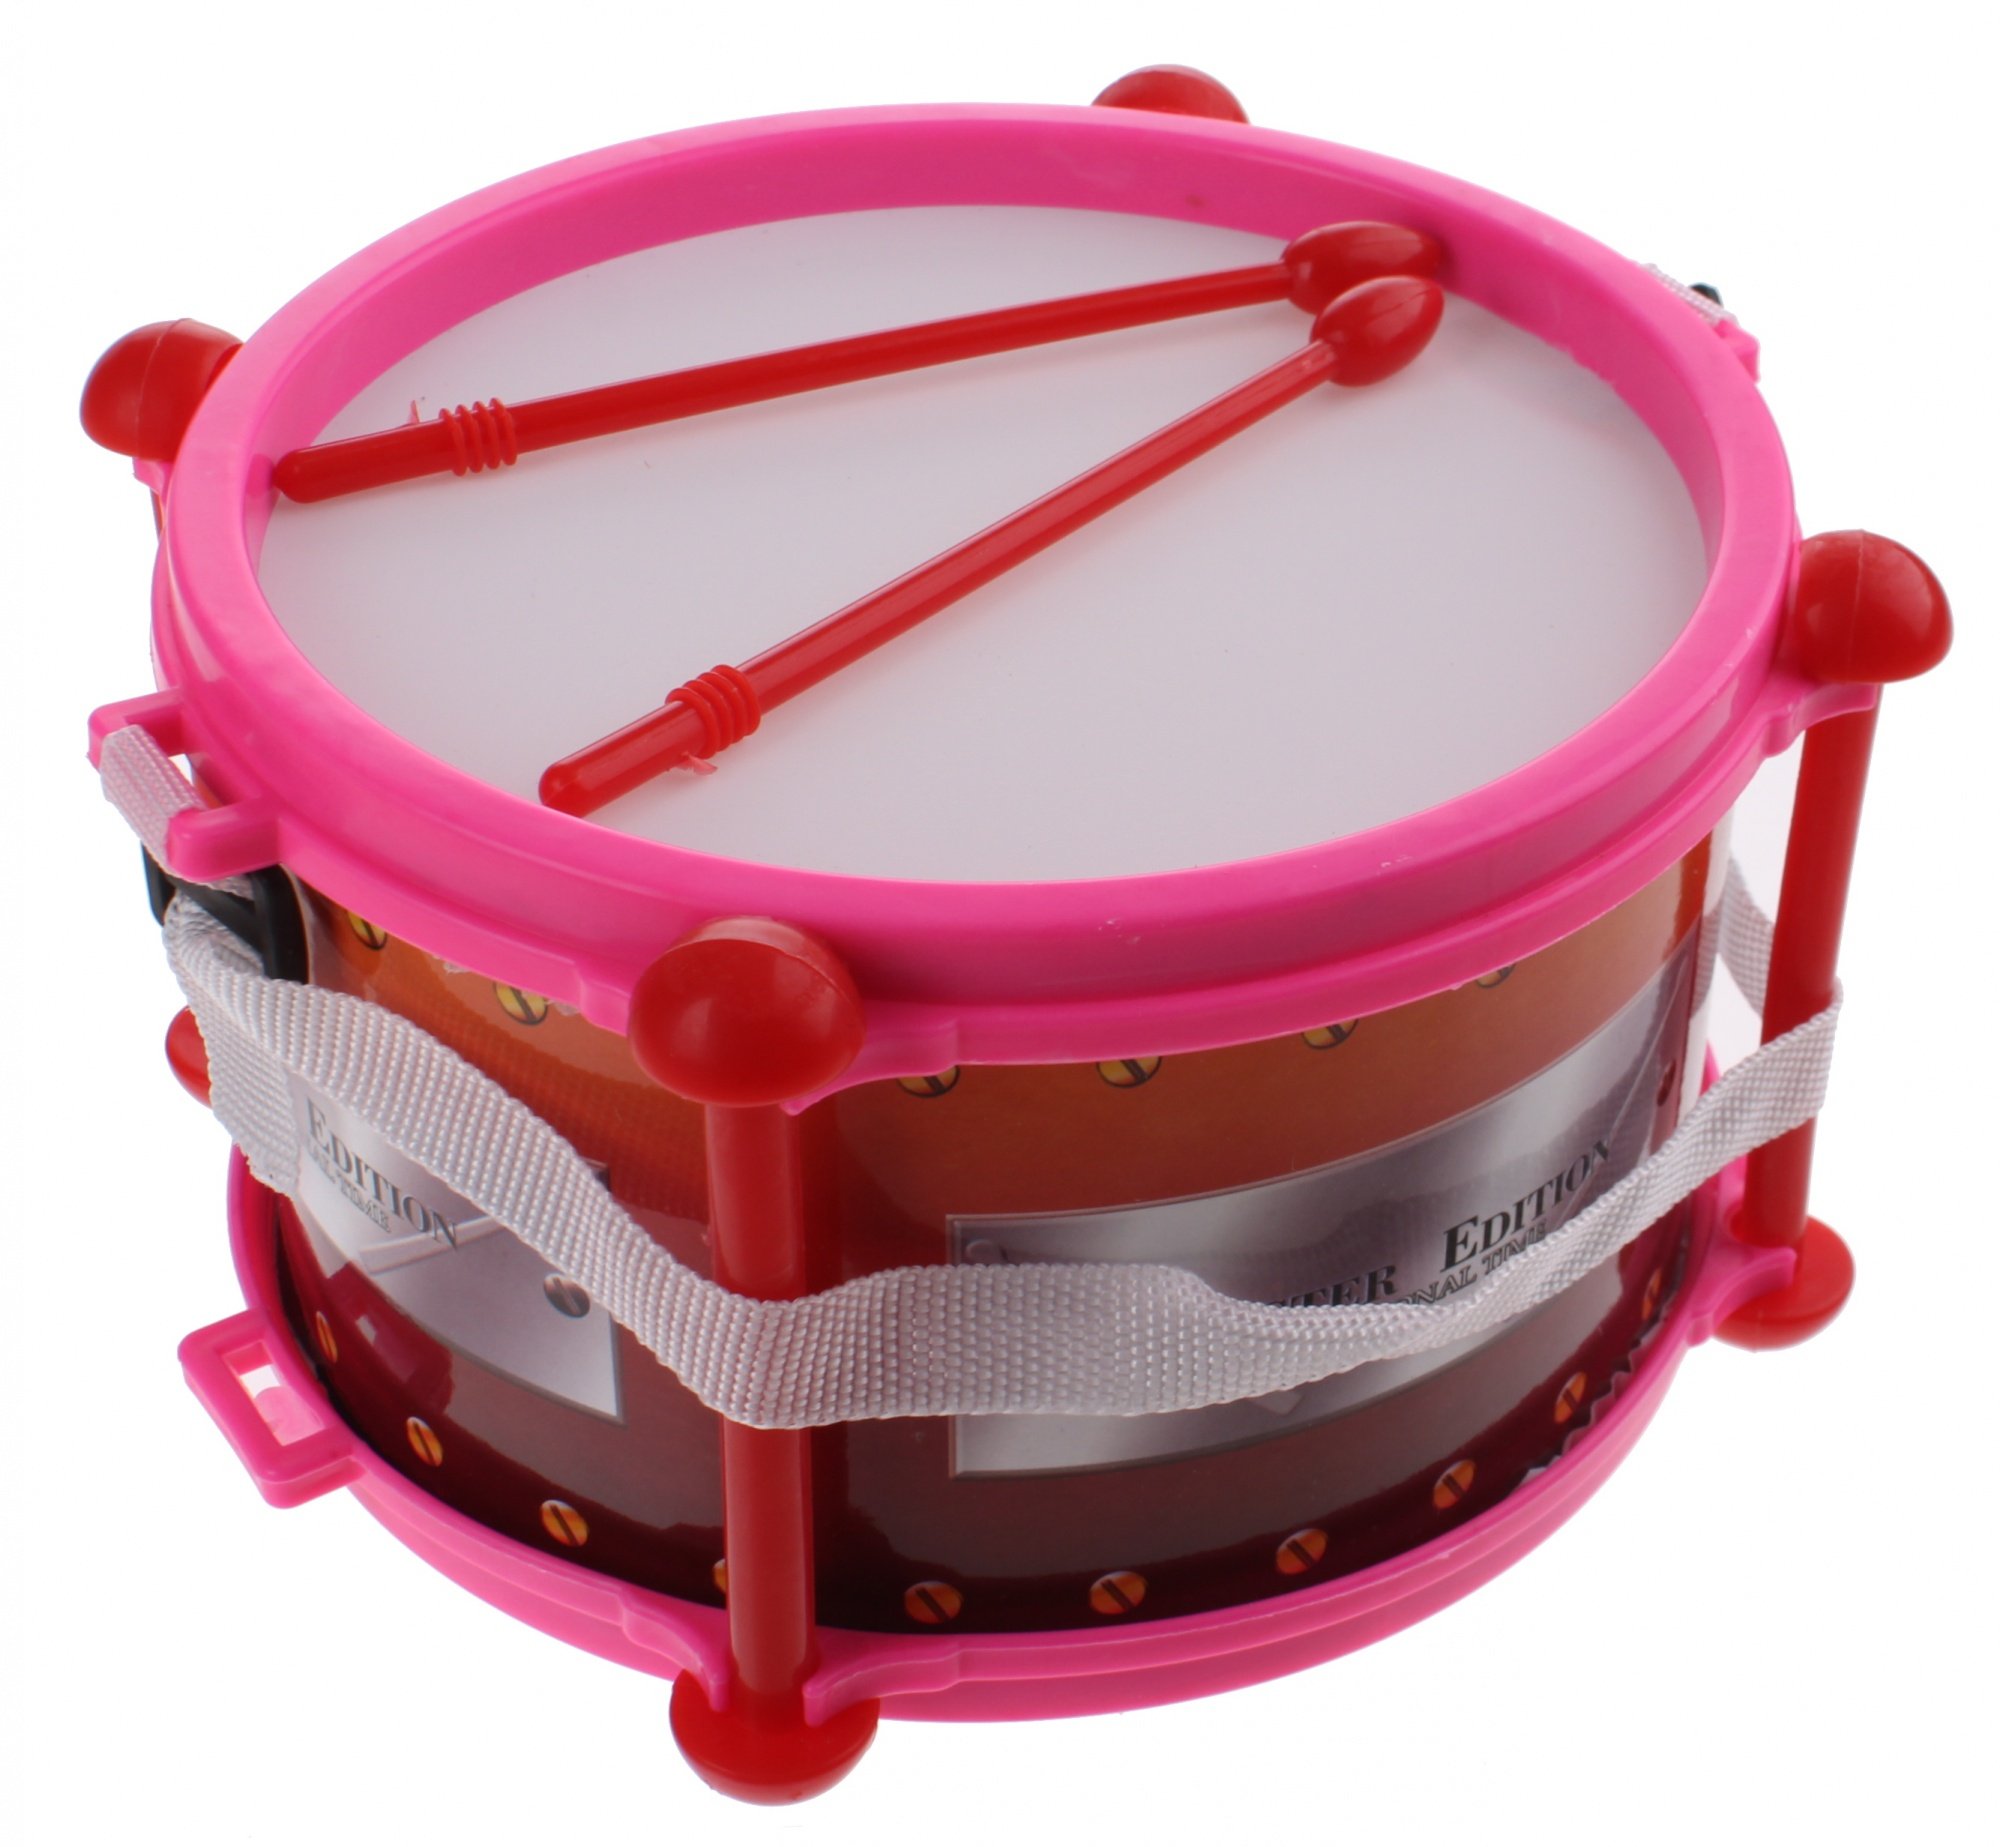 drum with sticks 19 cm plastic pink 3-piece